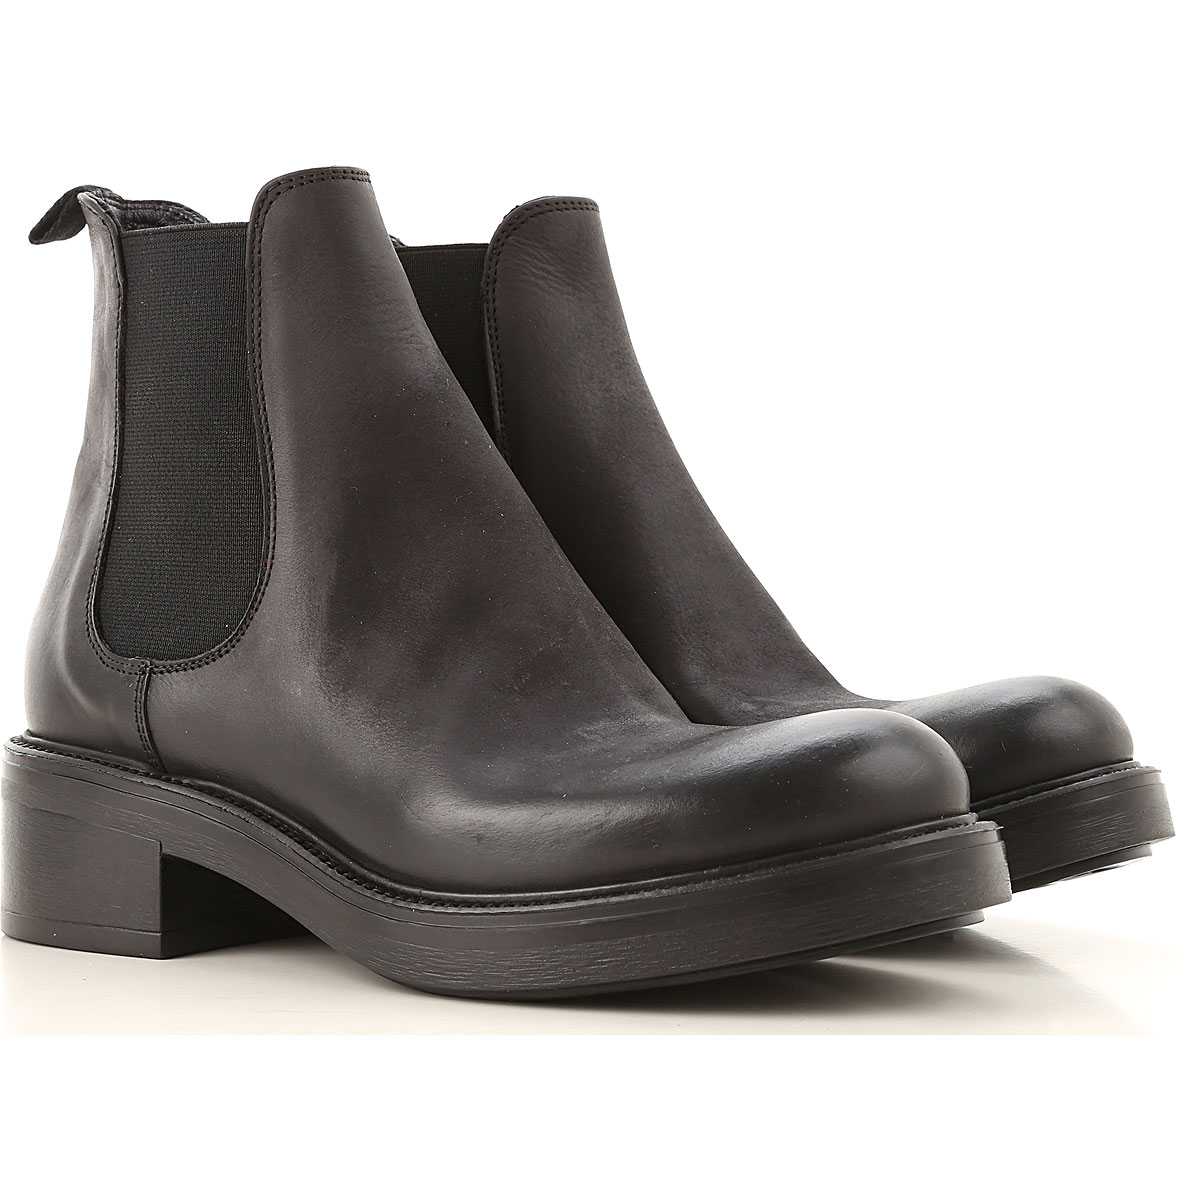 Strategia Chelsea Boots for Women, Black, Leather, 2019, 10 5 7 8 8.5 9